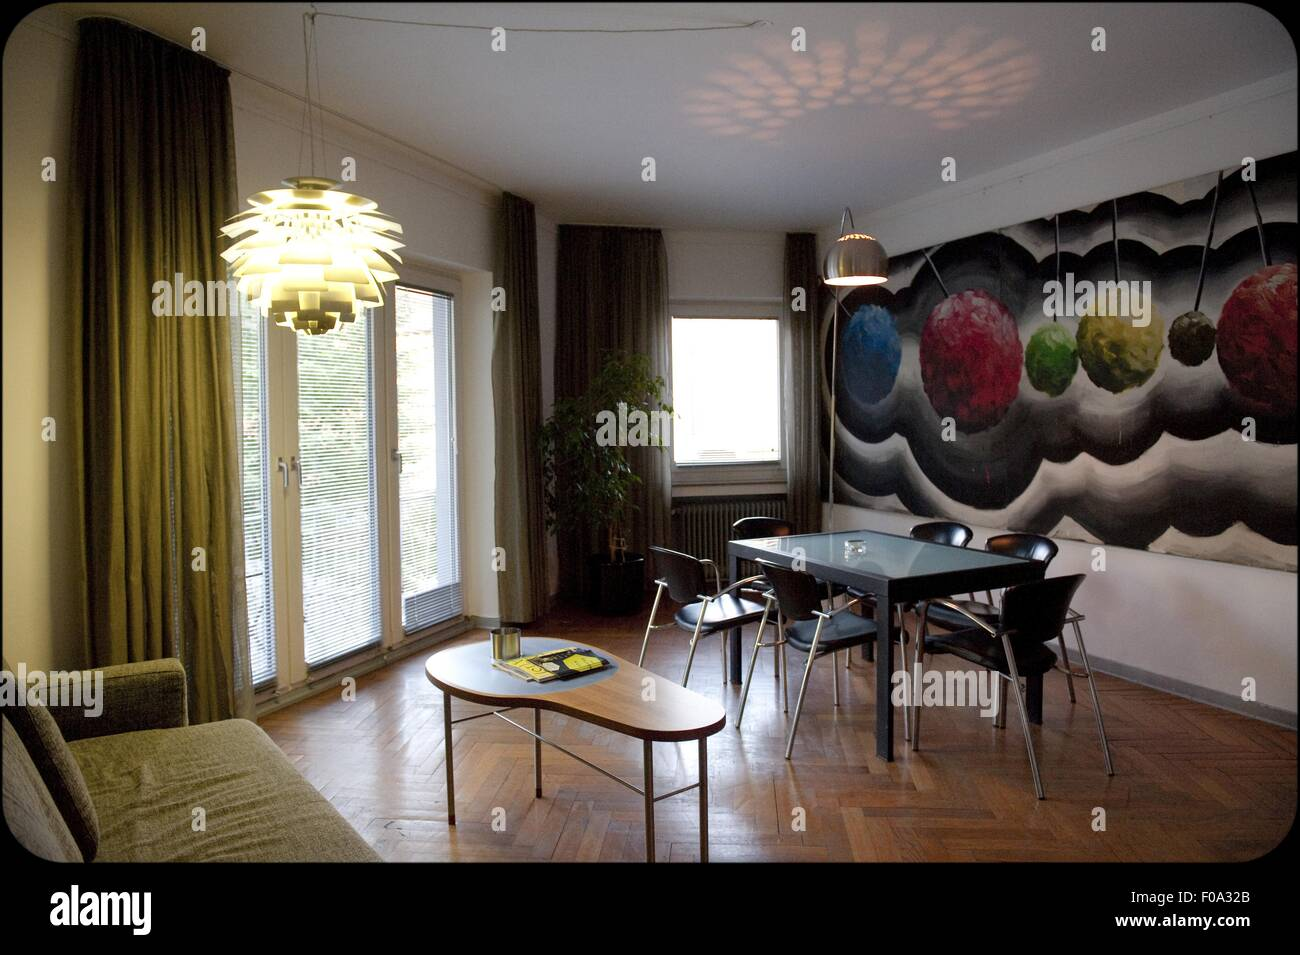 Interior of Hotel Chelsea with designer furniture and painted wall, Cologne, Germany - Stock Image